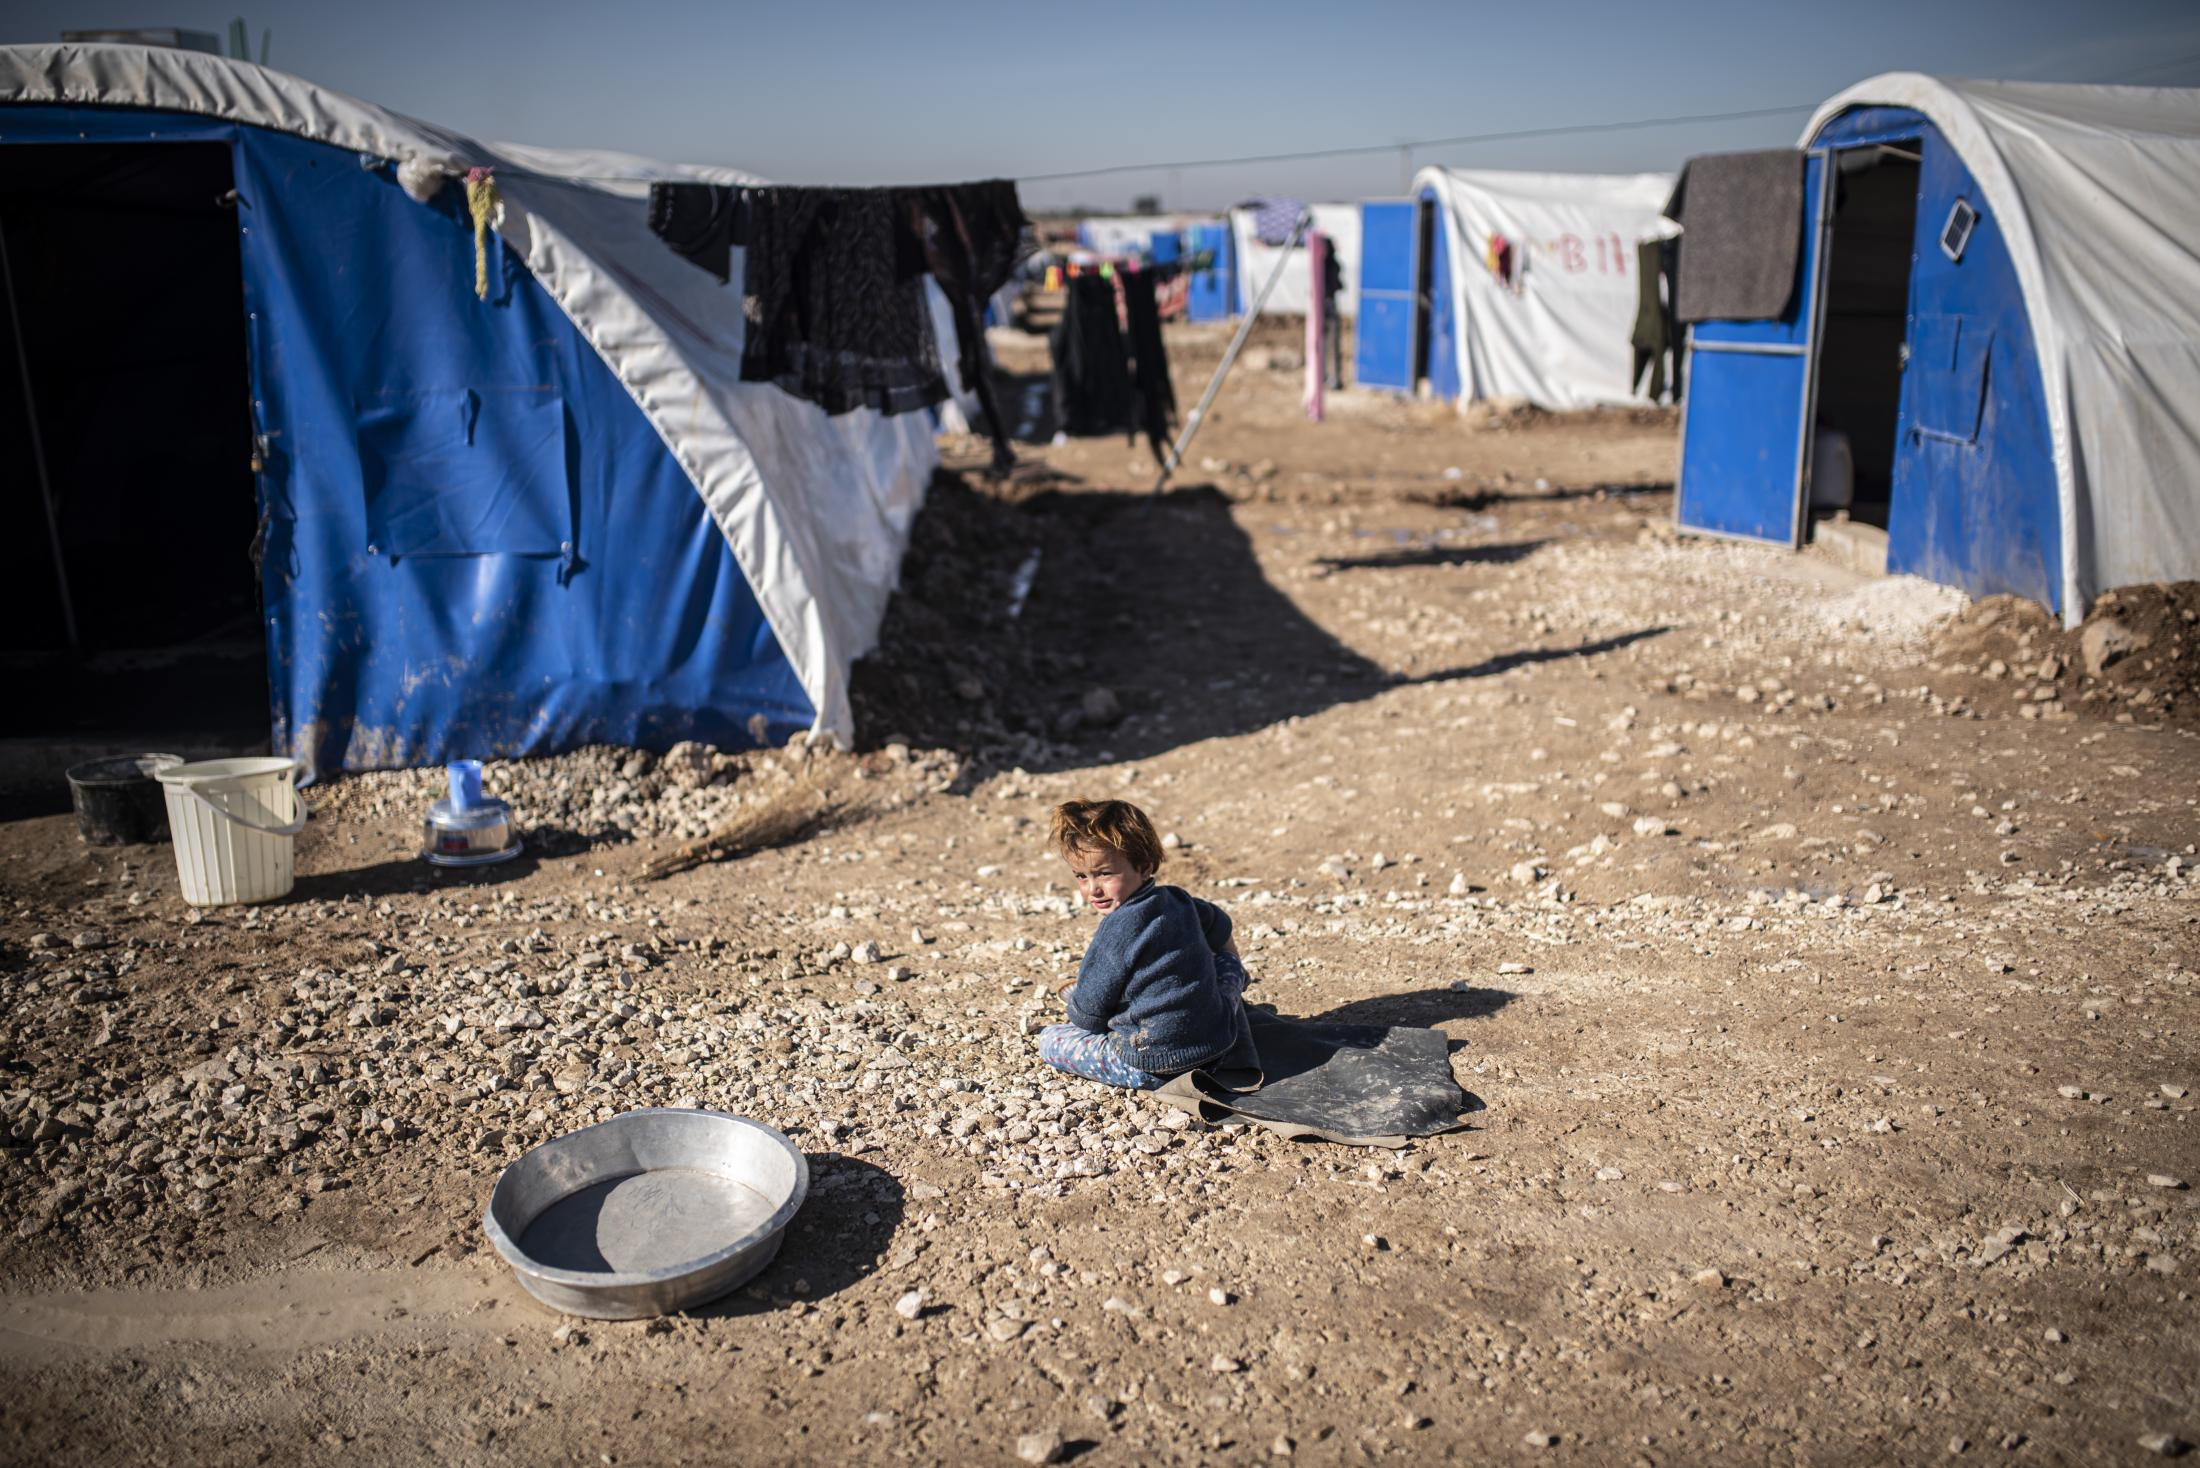 A child is playing outside the tent of her family in the Washokani refugee camp. After the withdrawal of US troops from northern Syria in October 2019, Turkey launched an offensive against the predominantly Kurdish areas in the northeast of the country along Islamist forces. Calls for war crimes investigations into the conduct of Ankara-backed militias are mounting ever since. (Andoni Lubaki / Euskal Fondoa)